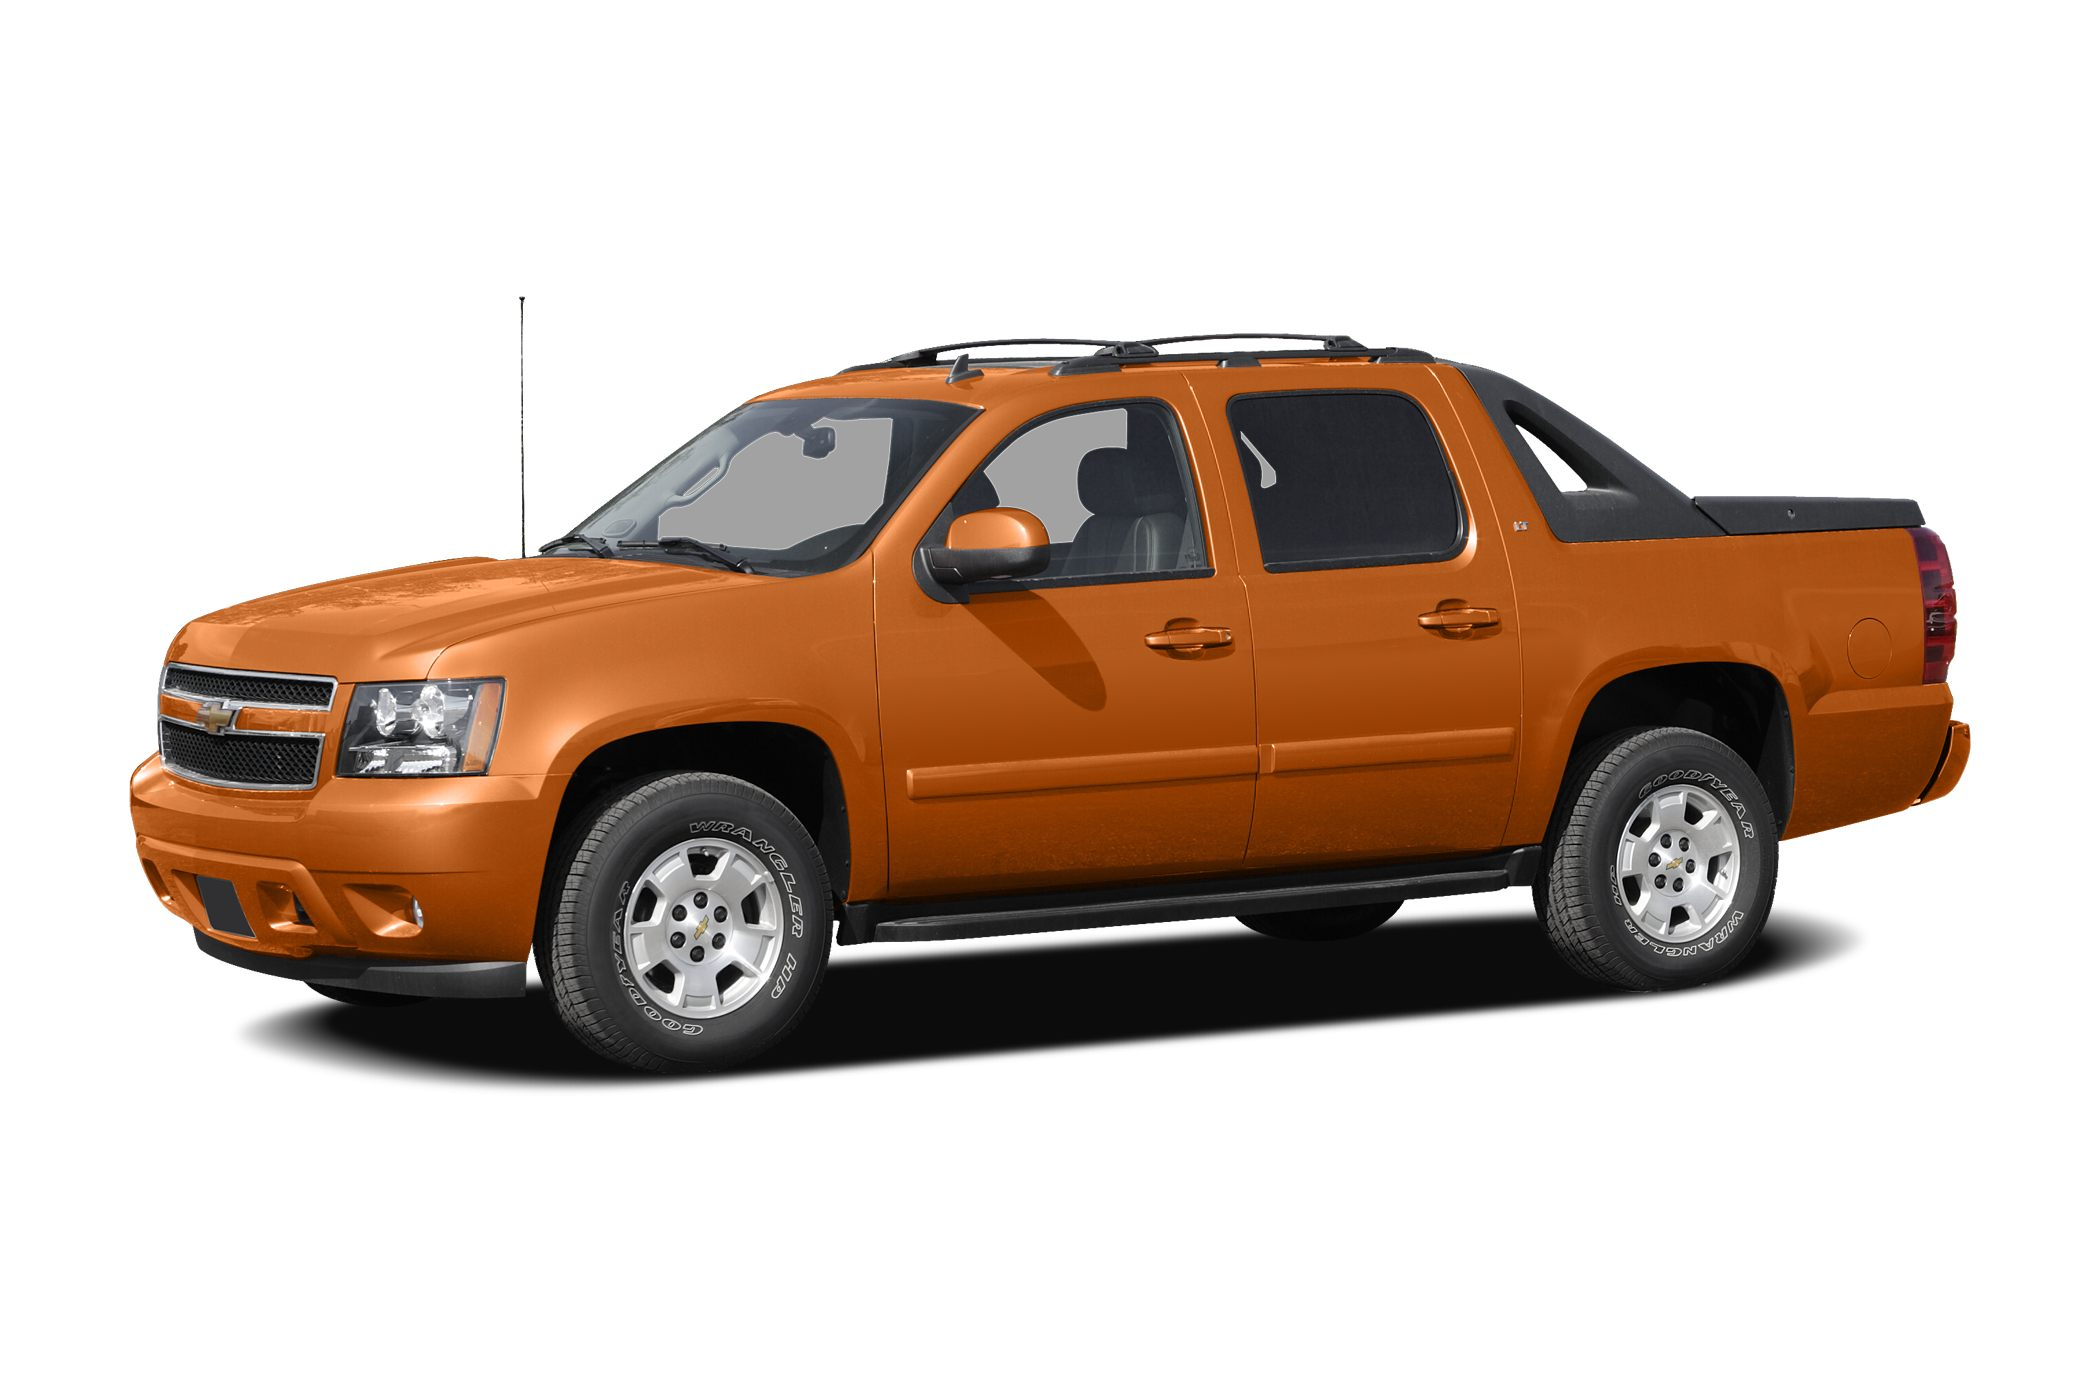 2007 Chevrolet Avalanche 1500 LT Crew Cab Pickup for sale in Gonzales for $13,700 with 194,100 miles.